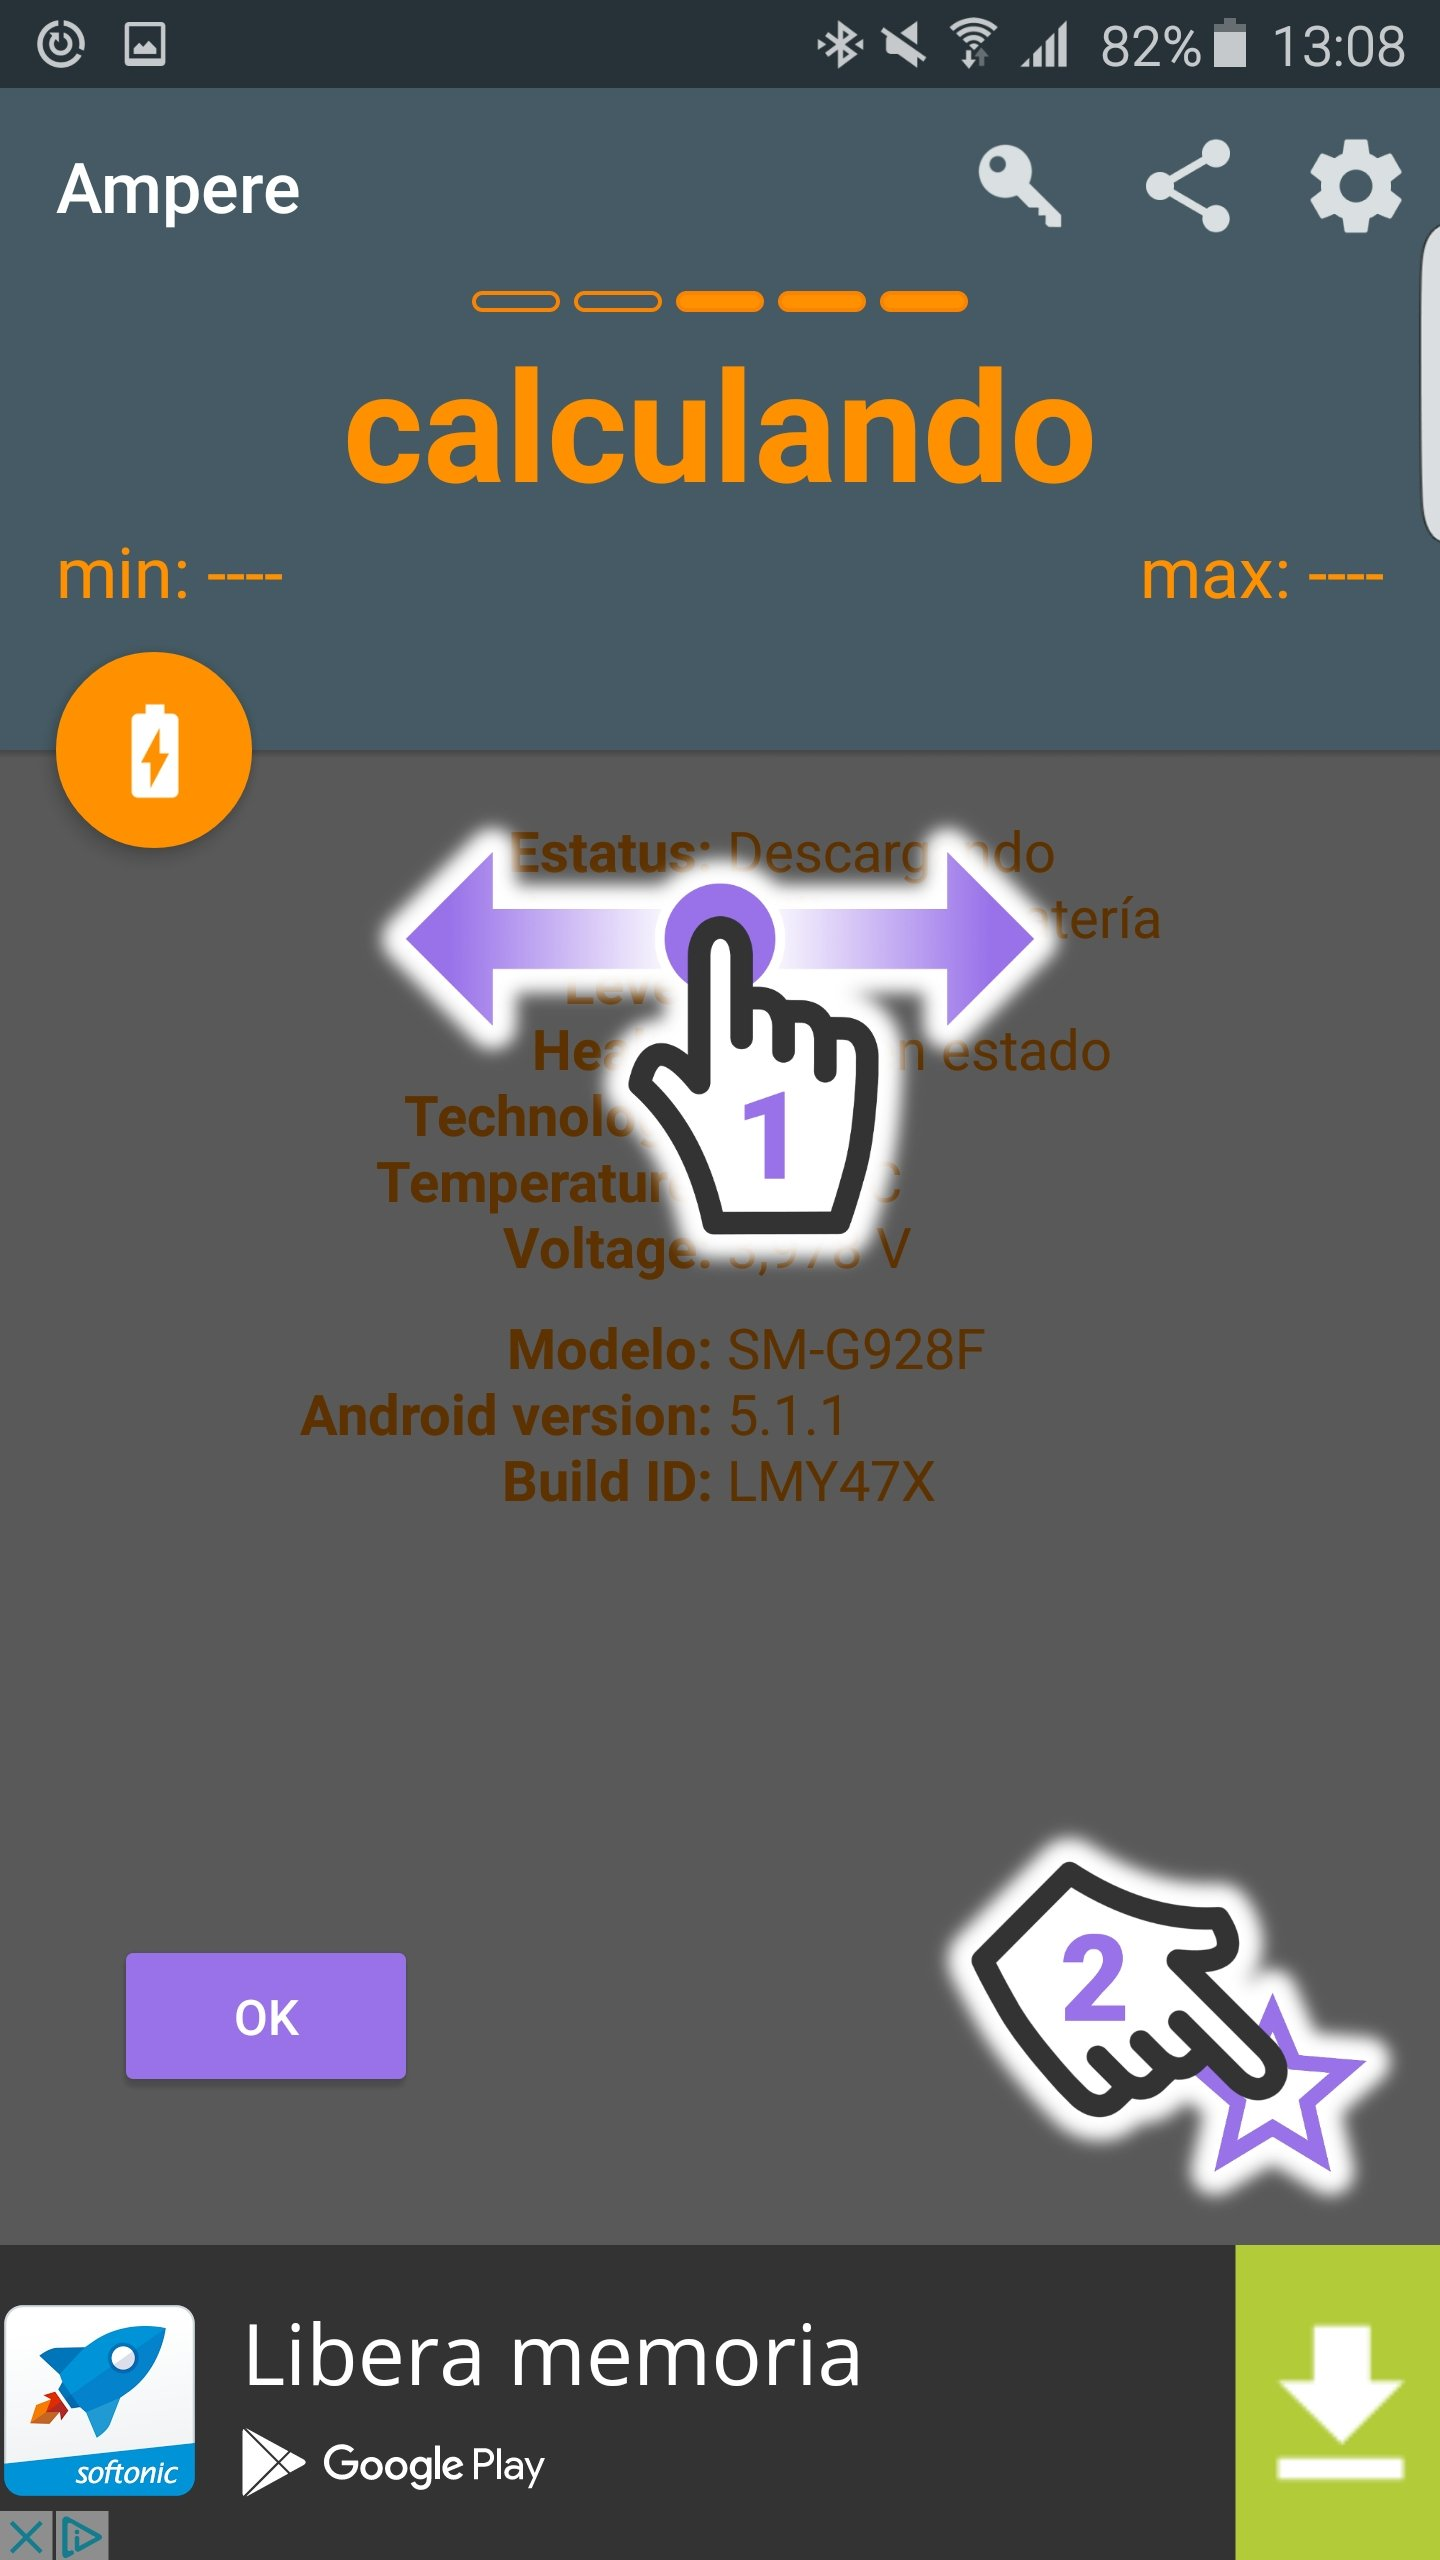 Ampere Android image 7